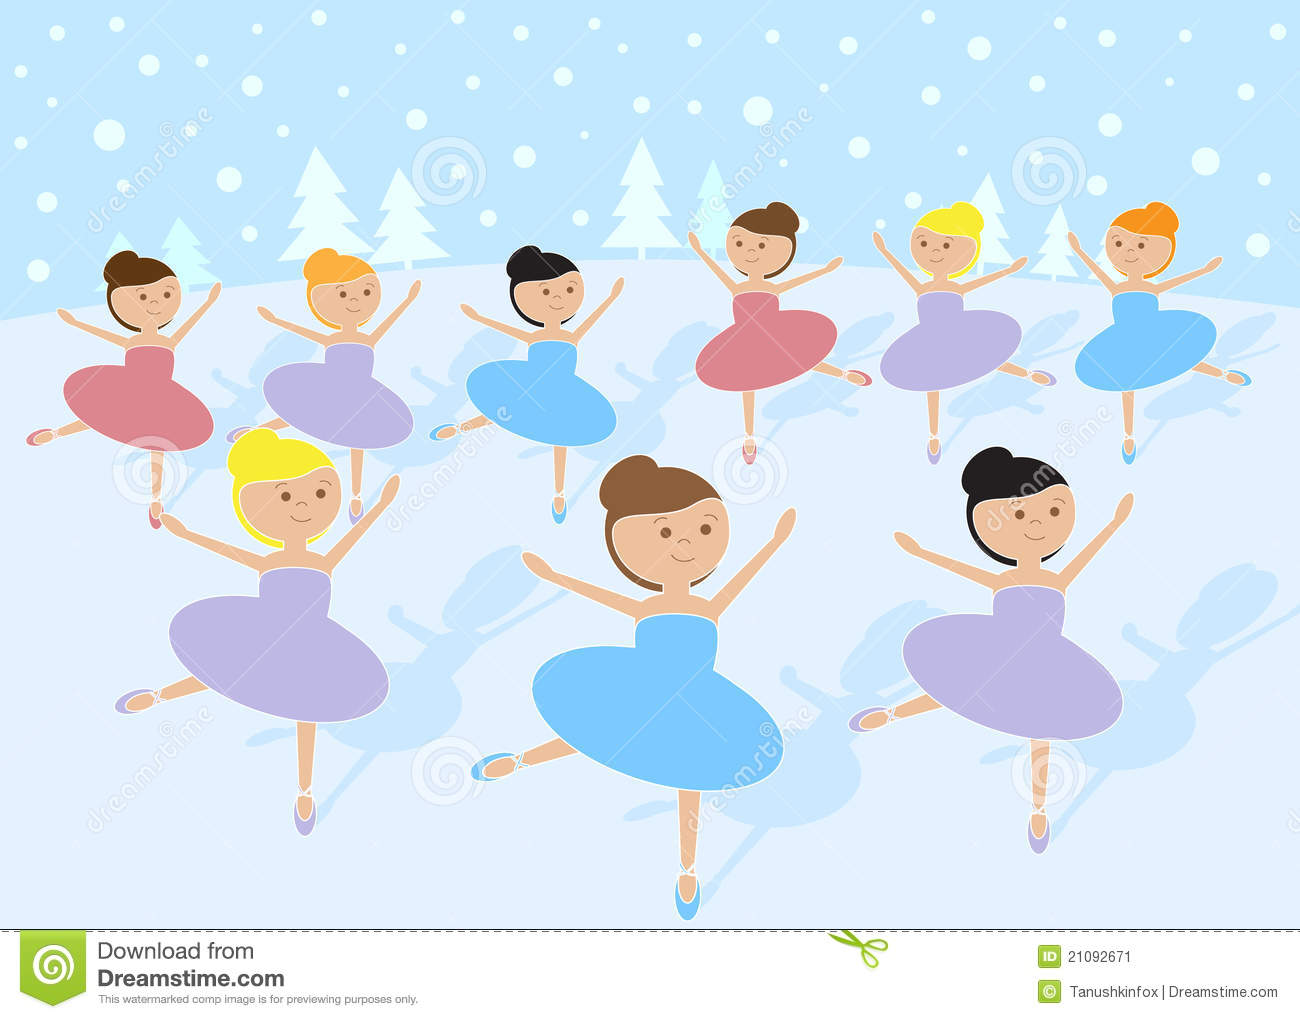 Stock Image  12 Days Of Christmas  9 Ladies Dancing